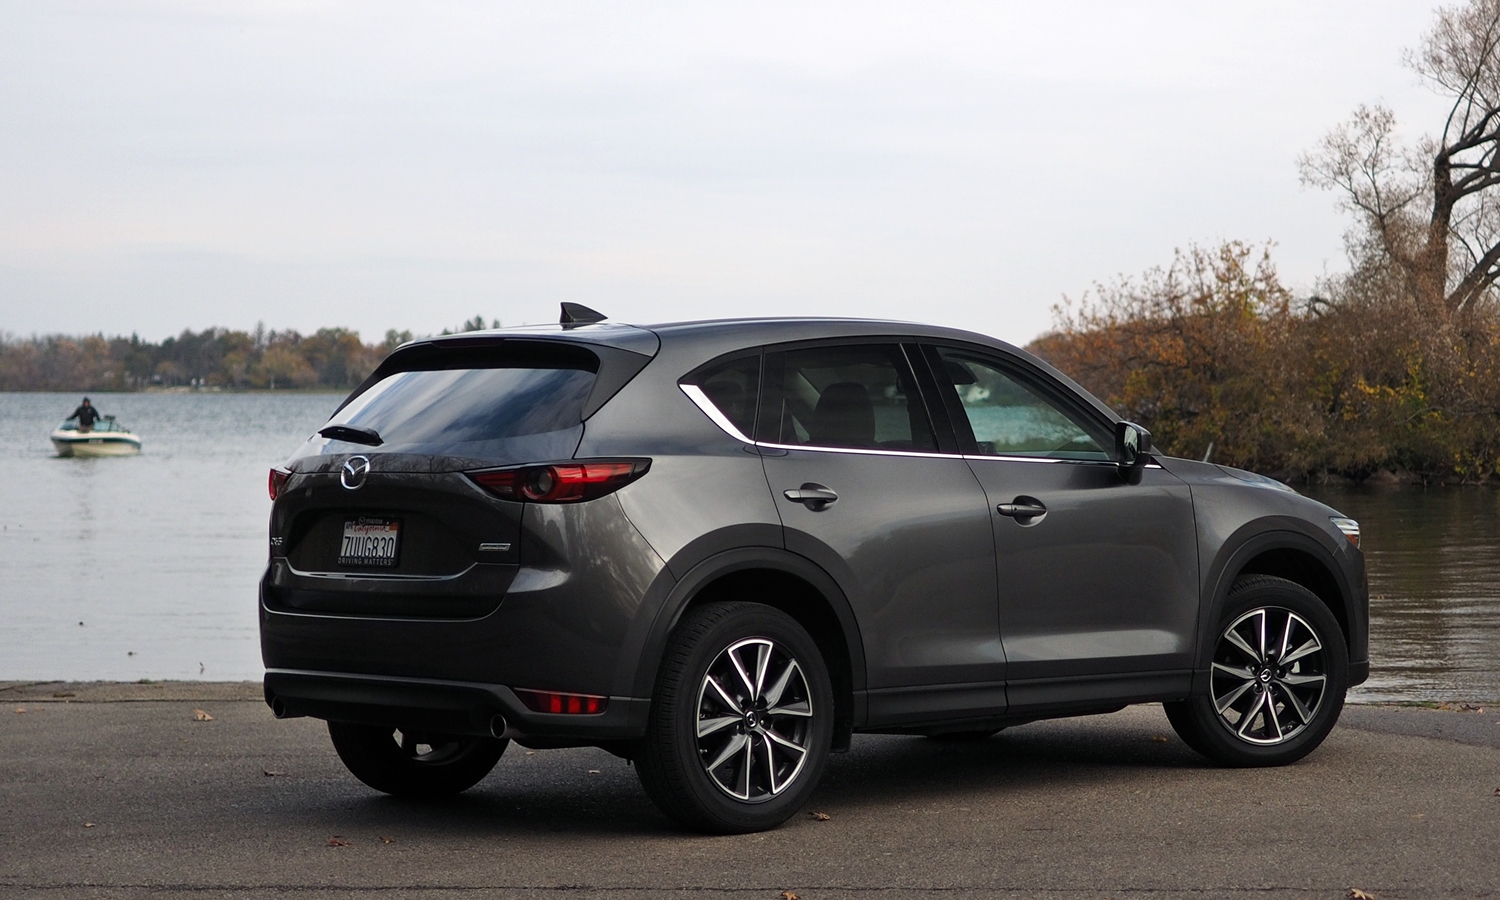 CX-5 Reviews: 2017 Mazda CX-5 rear quarter view